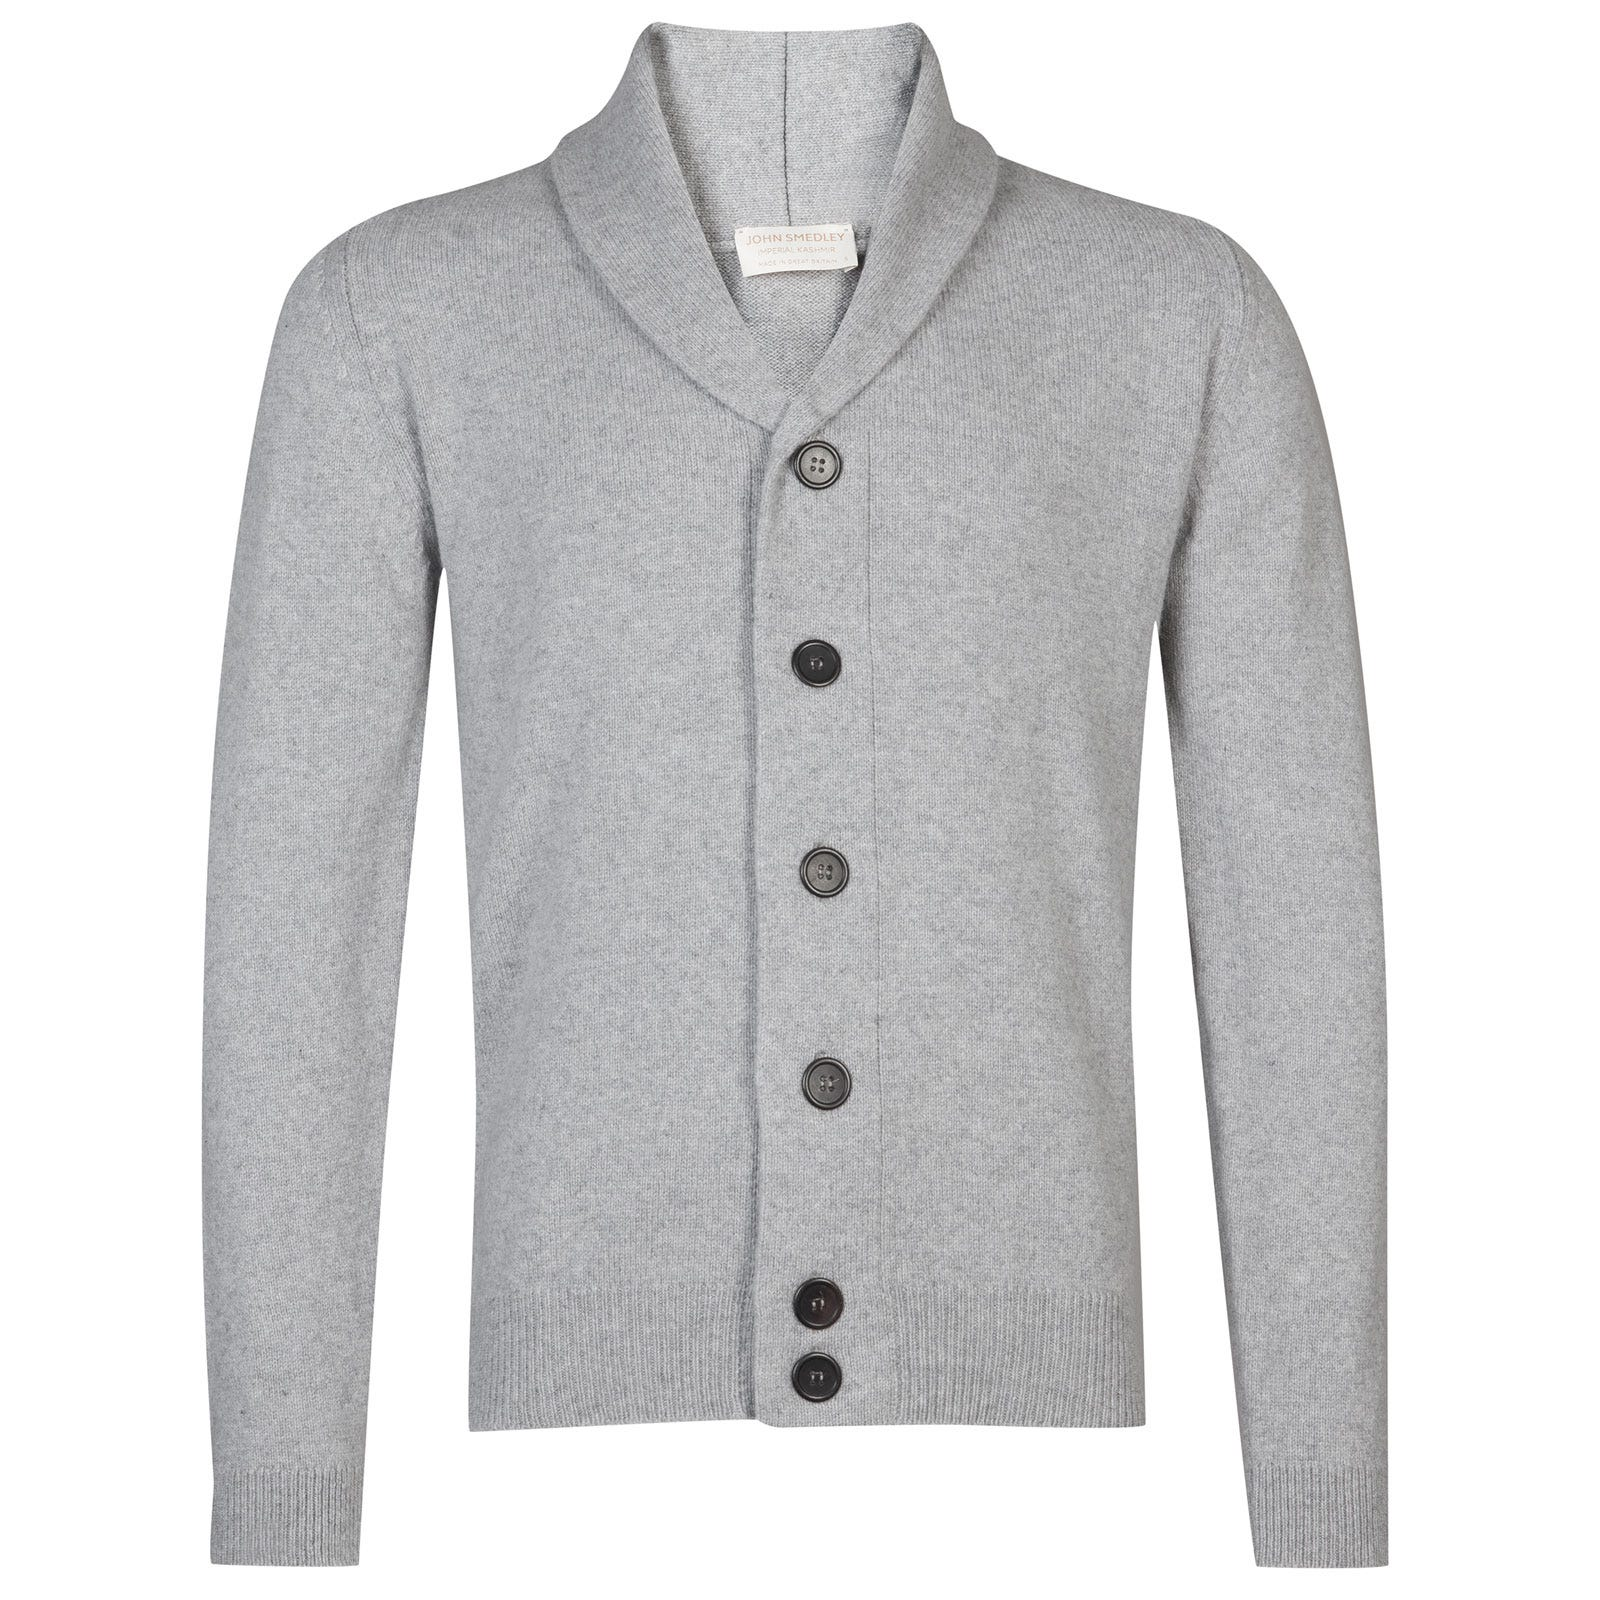 John Smedley patterson Wool and Cashmere Jacket in Silver-M